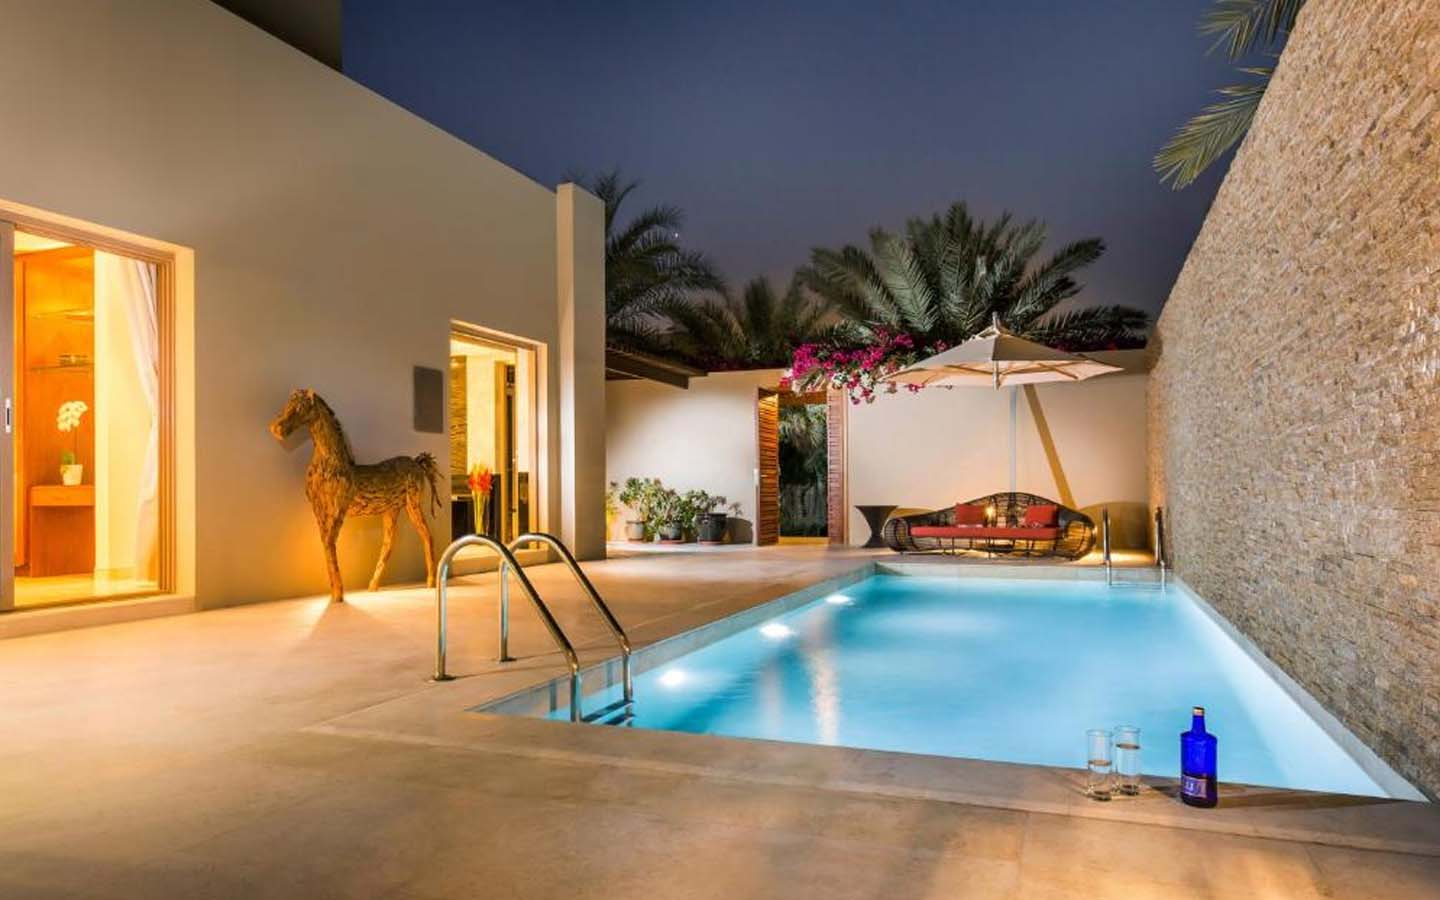 Melia luxury villas with a private pool